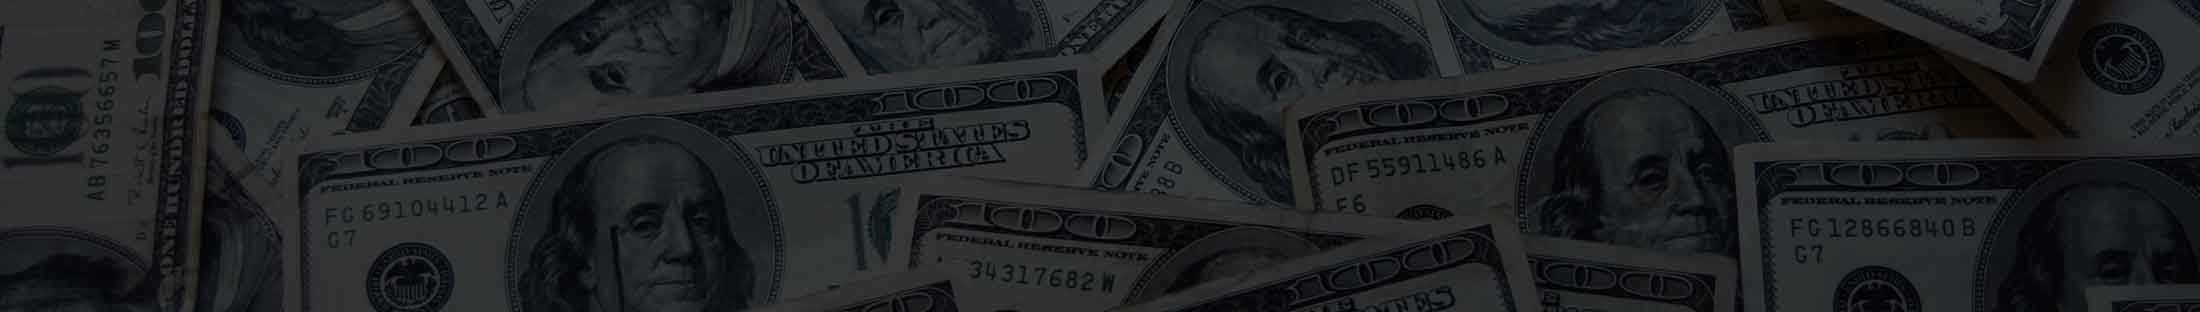 Dollar bill background for the Debt Recovery page at Capital Financial